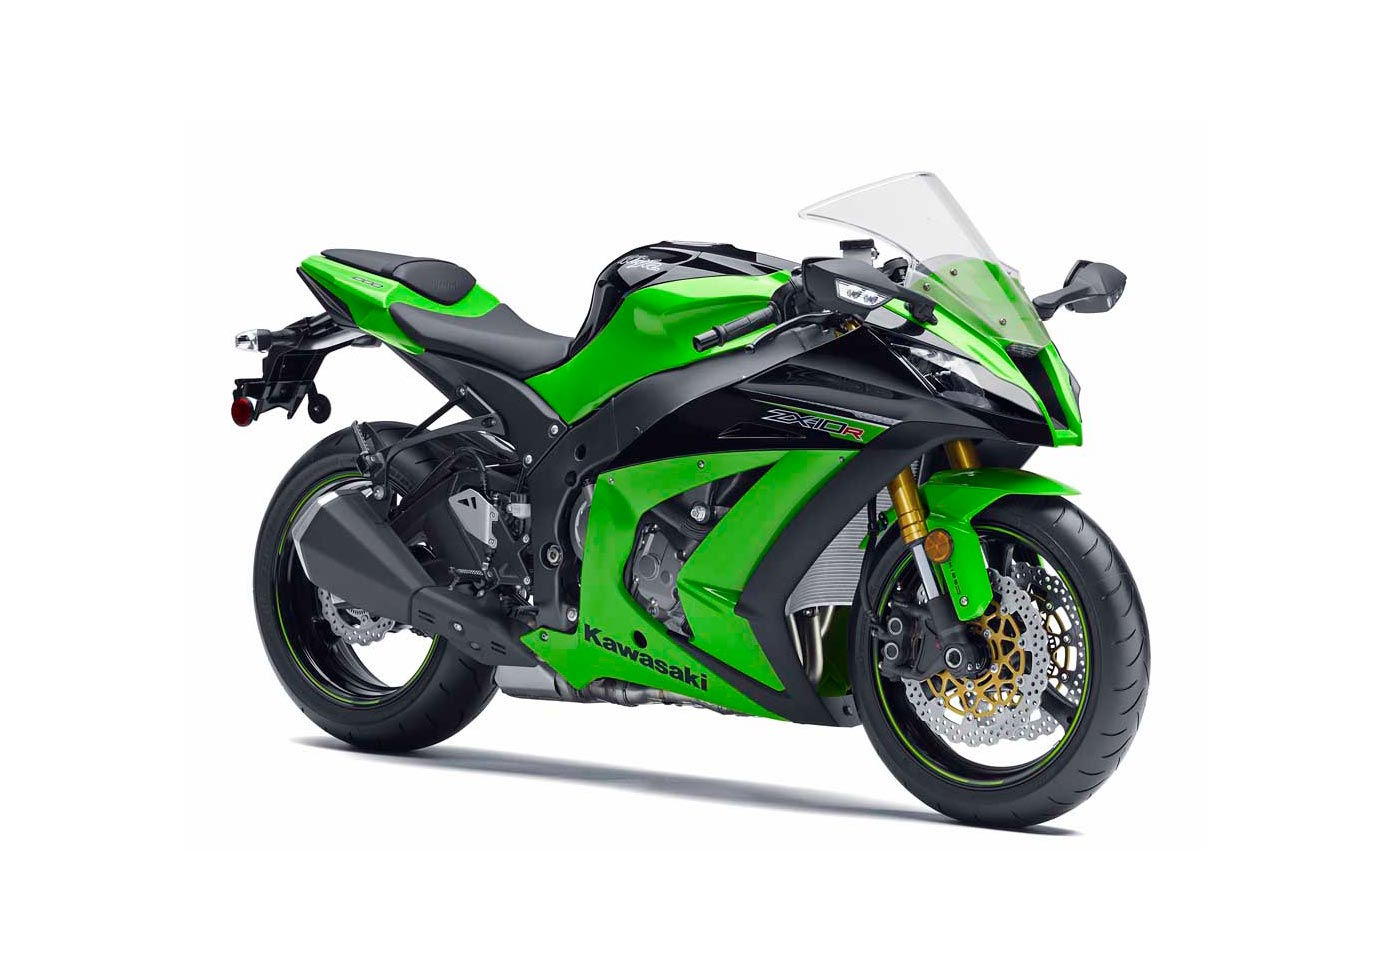 Image result for 2013 Kawasaki Ninja ZX-10R